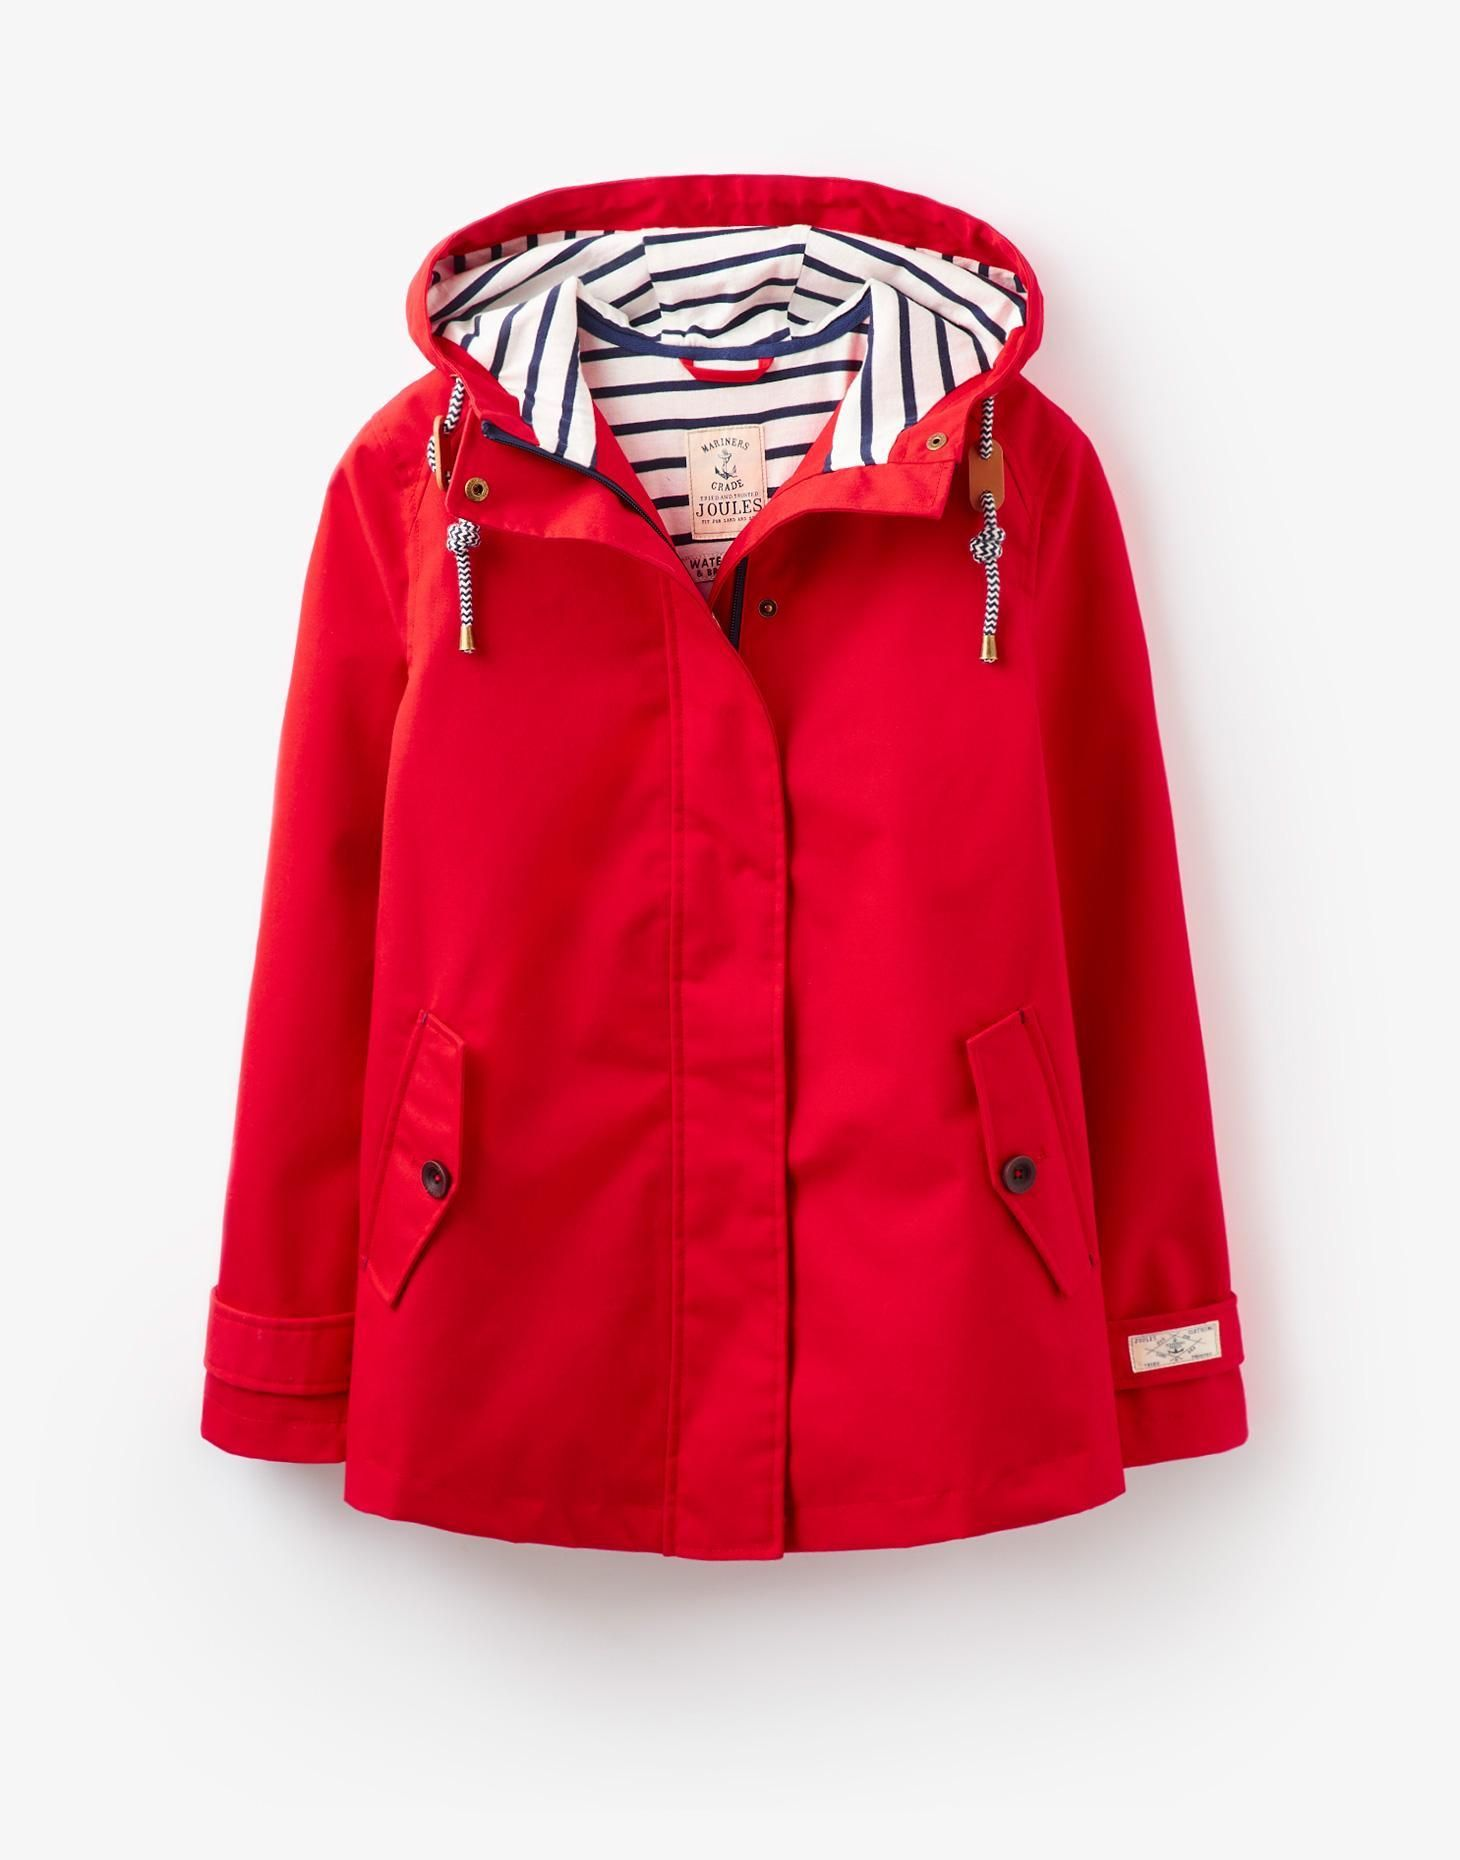 2d704a51d ✔️ Coast Red Waterproof Jacket | Joules US | Wish list in 2019 ...